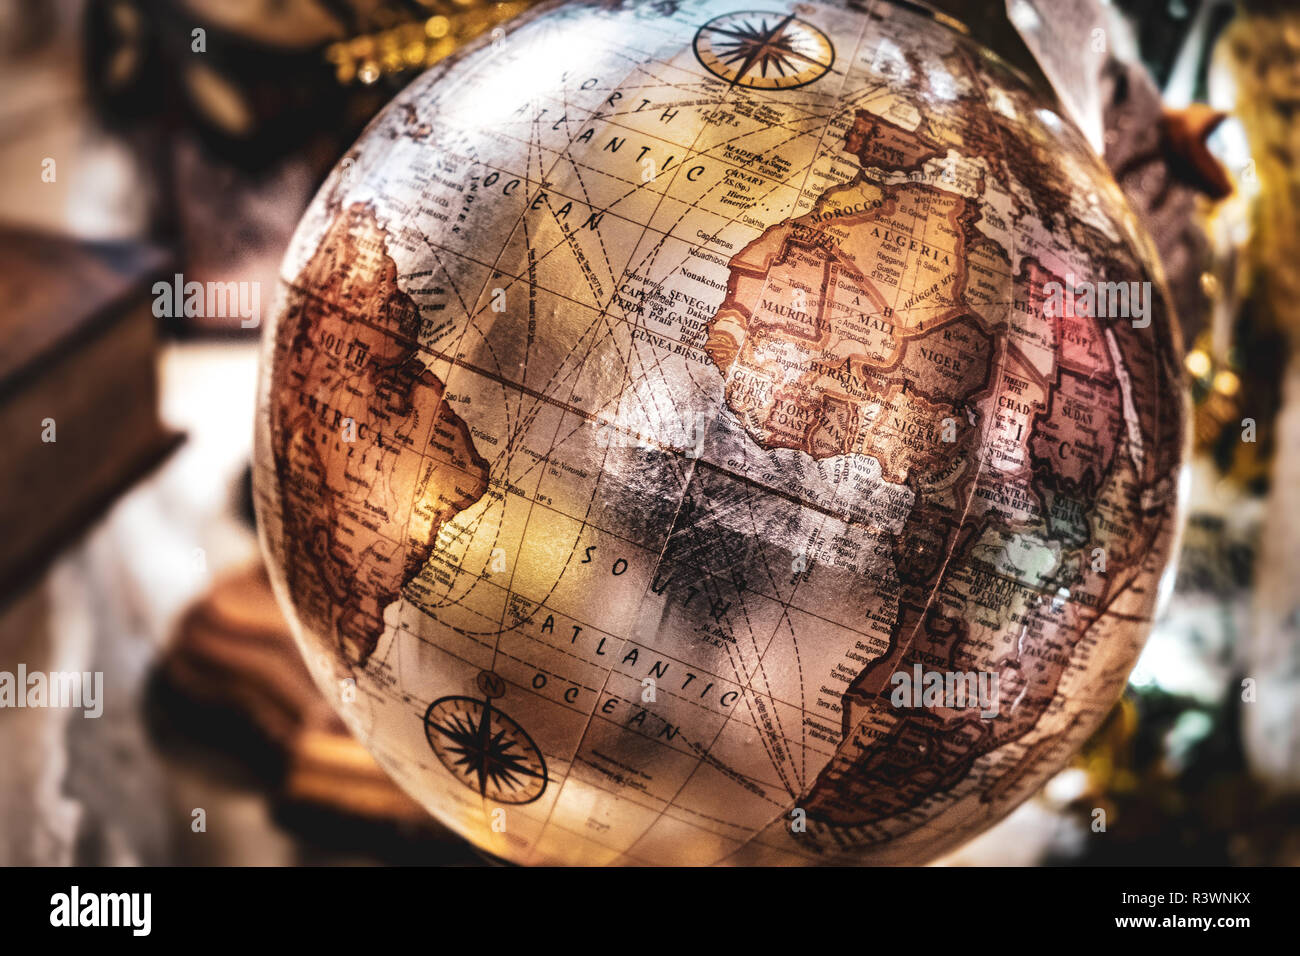 vintage globe background retro brown speia travel geography ancient map - Stock Image